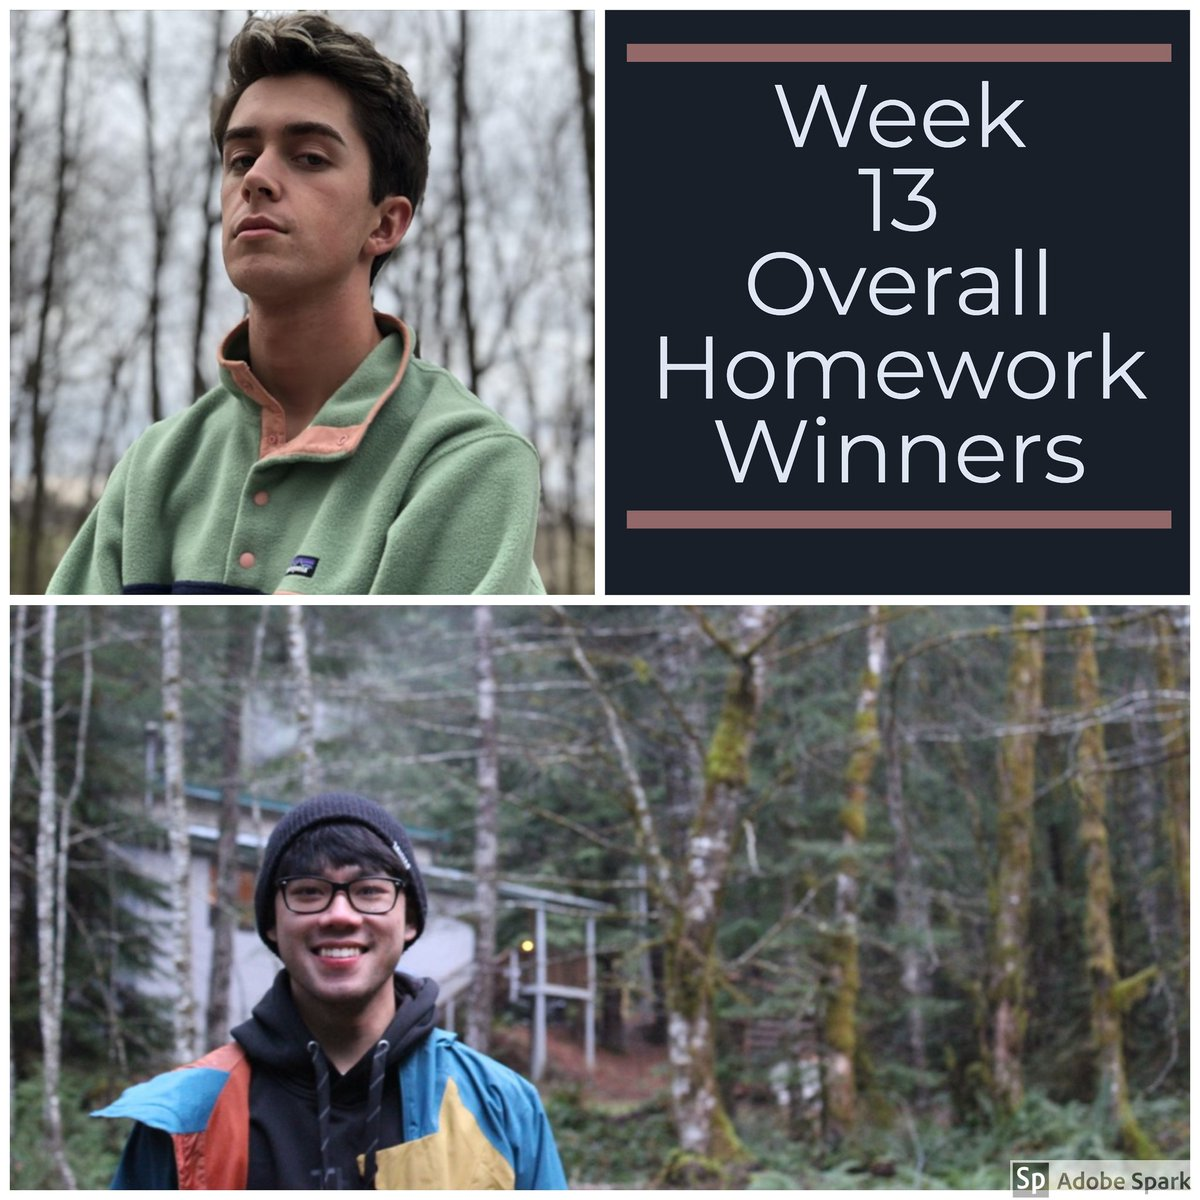 Congratulations Drew and Madi! Your peers voted your photos at the top for week 13. #mhsphotography #photography #unedited #homeworkwinners #highschoolphotographer pic.twitter.com/fZ3zfF9Dso